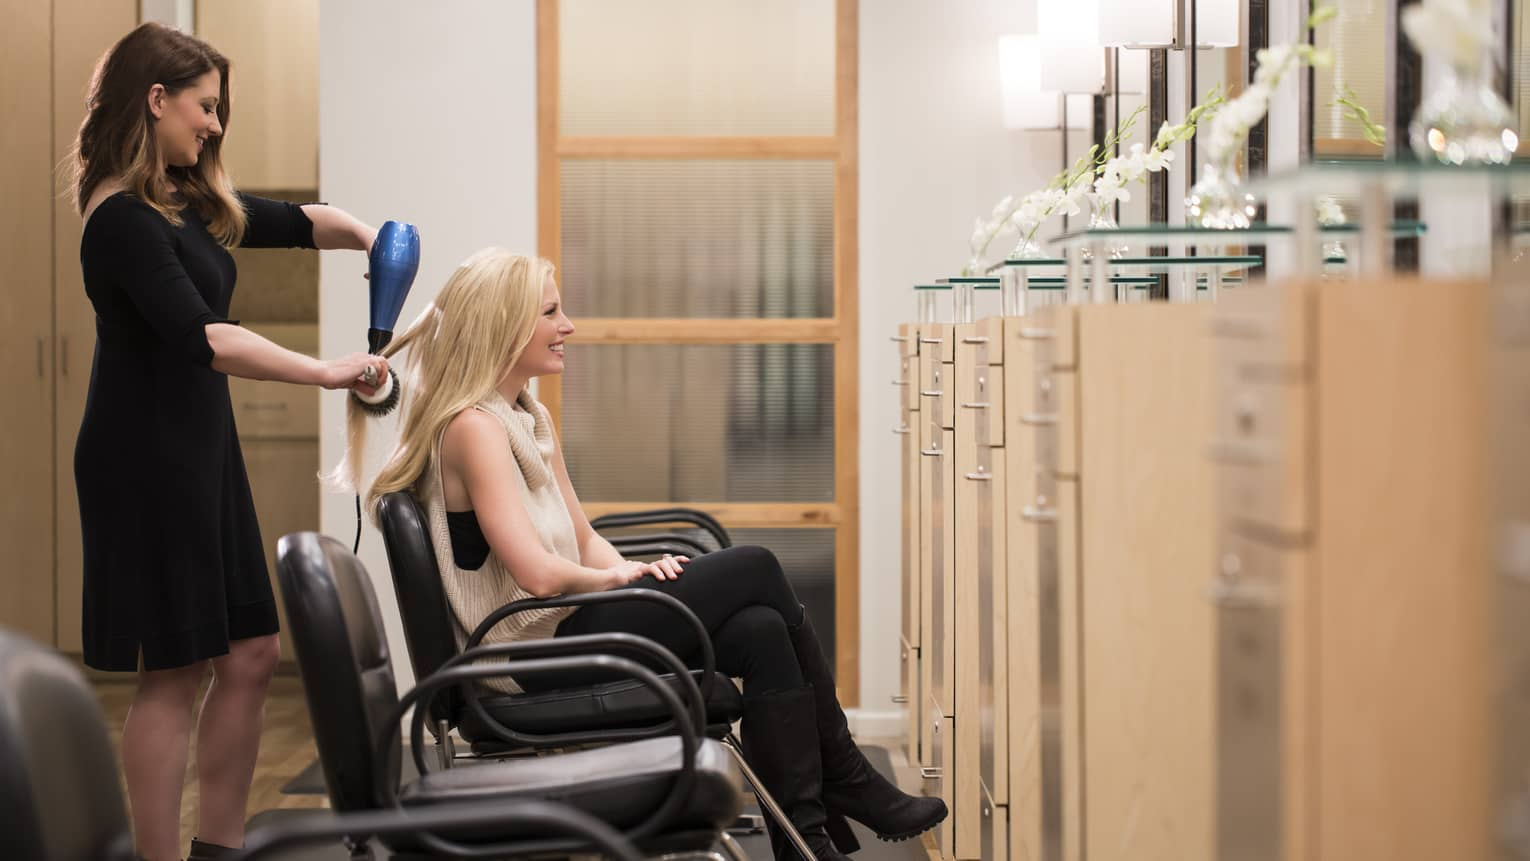 Hairstylist brushes, blow dries woman's long hair as she sits in barber chair in Spa